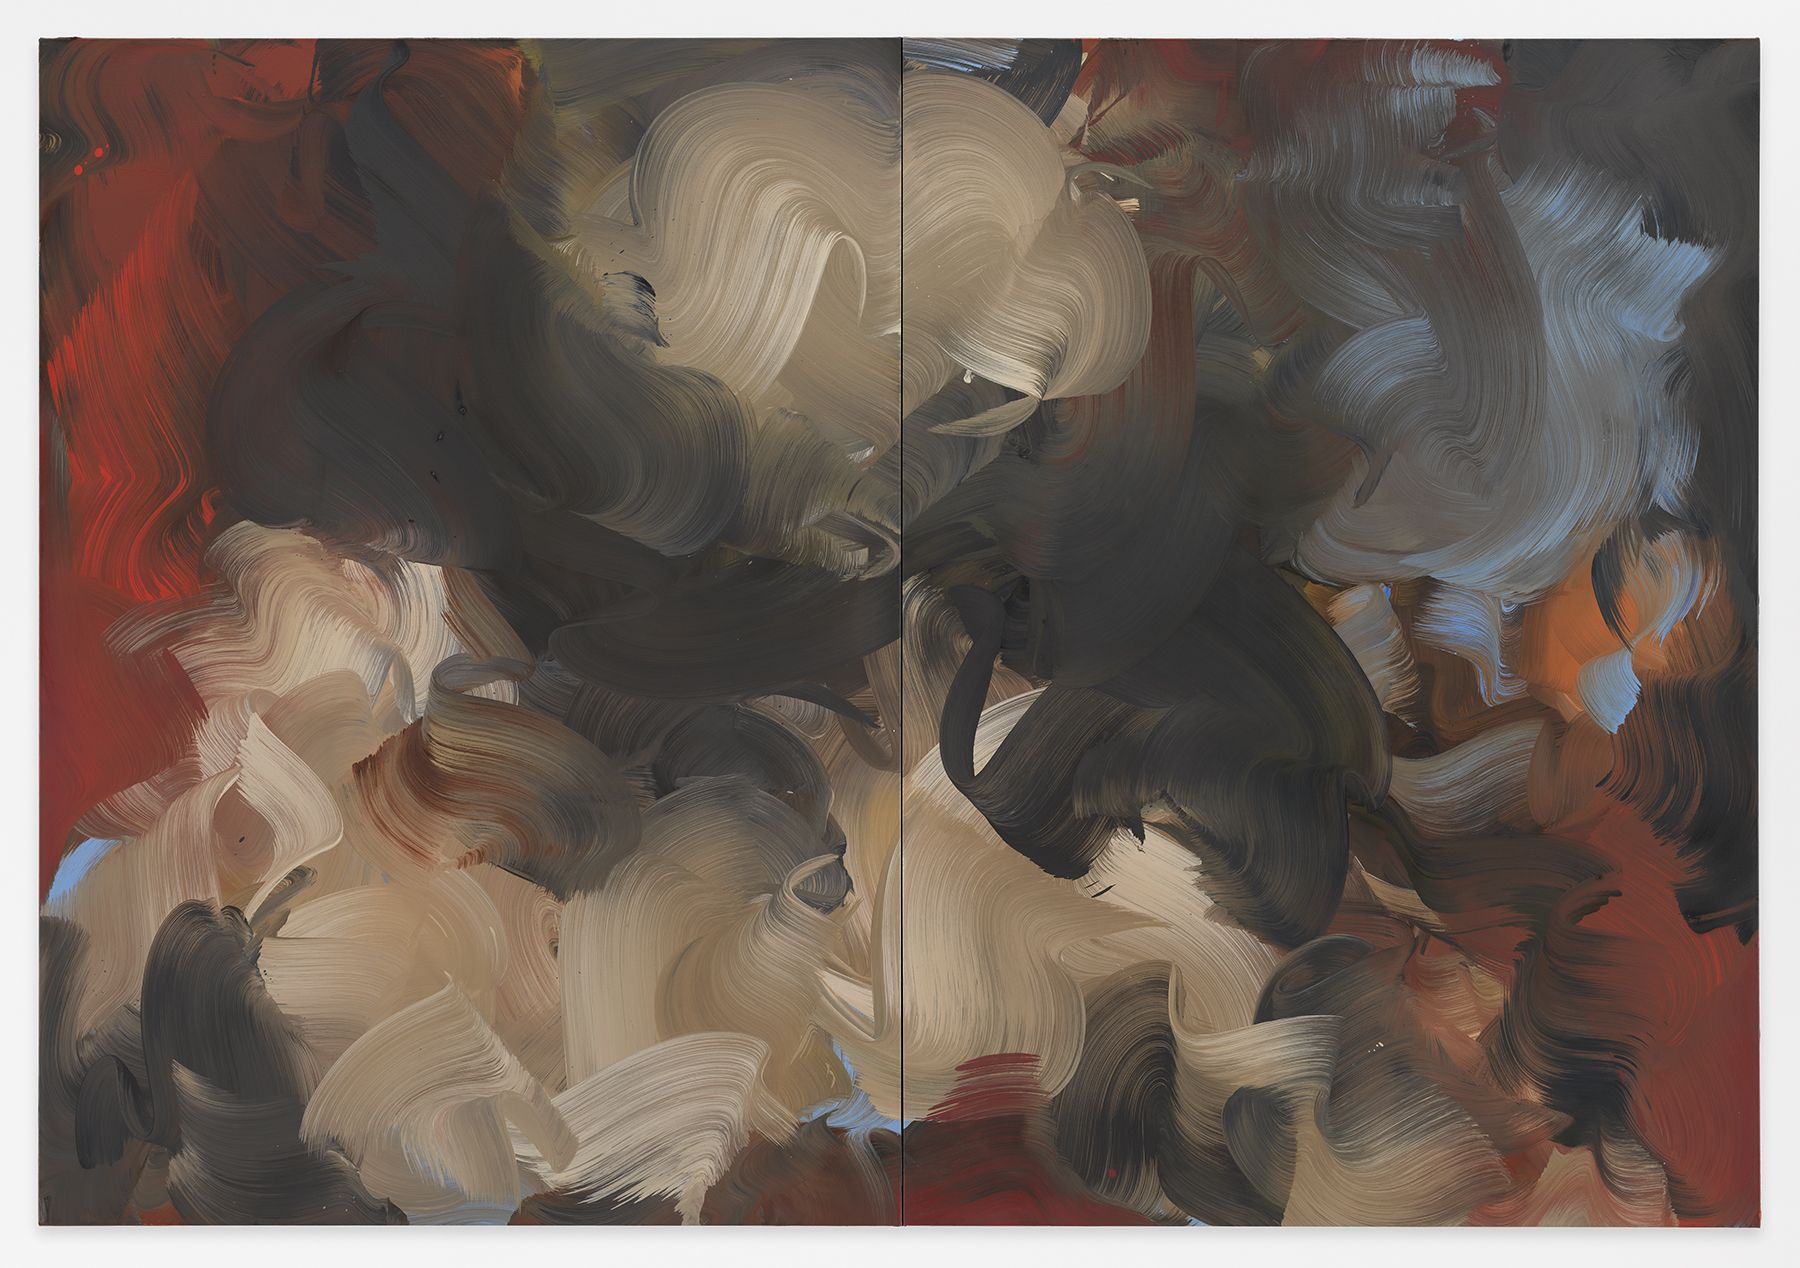 pull + ebb, 2018,Oil on canvas,71 x 102 inches,180.3 x 129.5 cm, MMG#30266